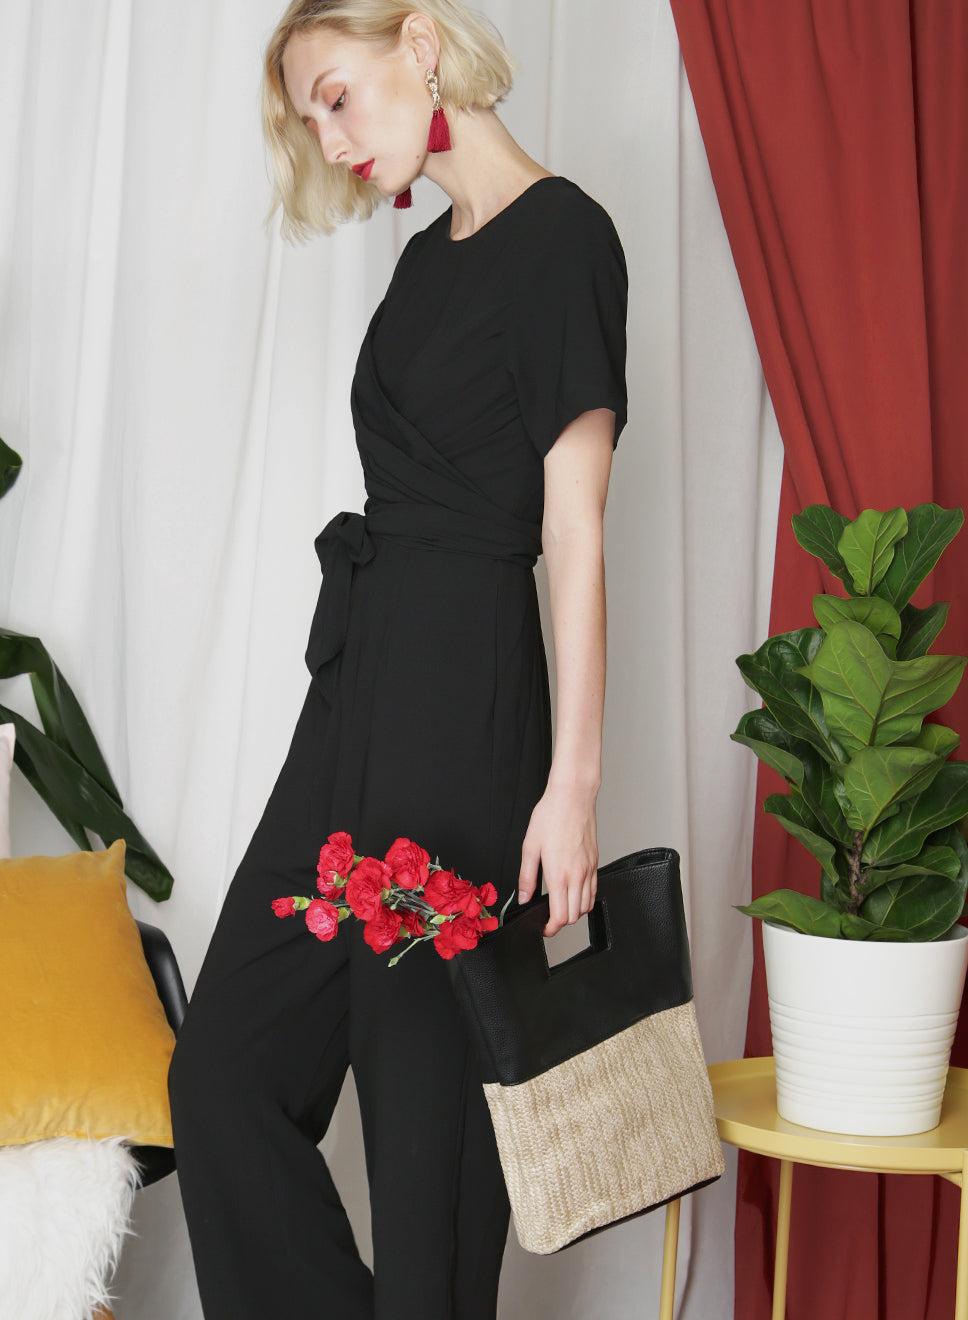 MAE Straw Tote (Black) at $ 32.50 only sold at And Well Dressed Online Fashion Store Singapore